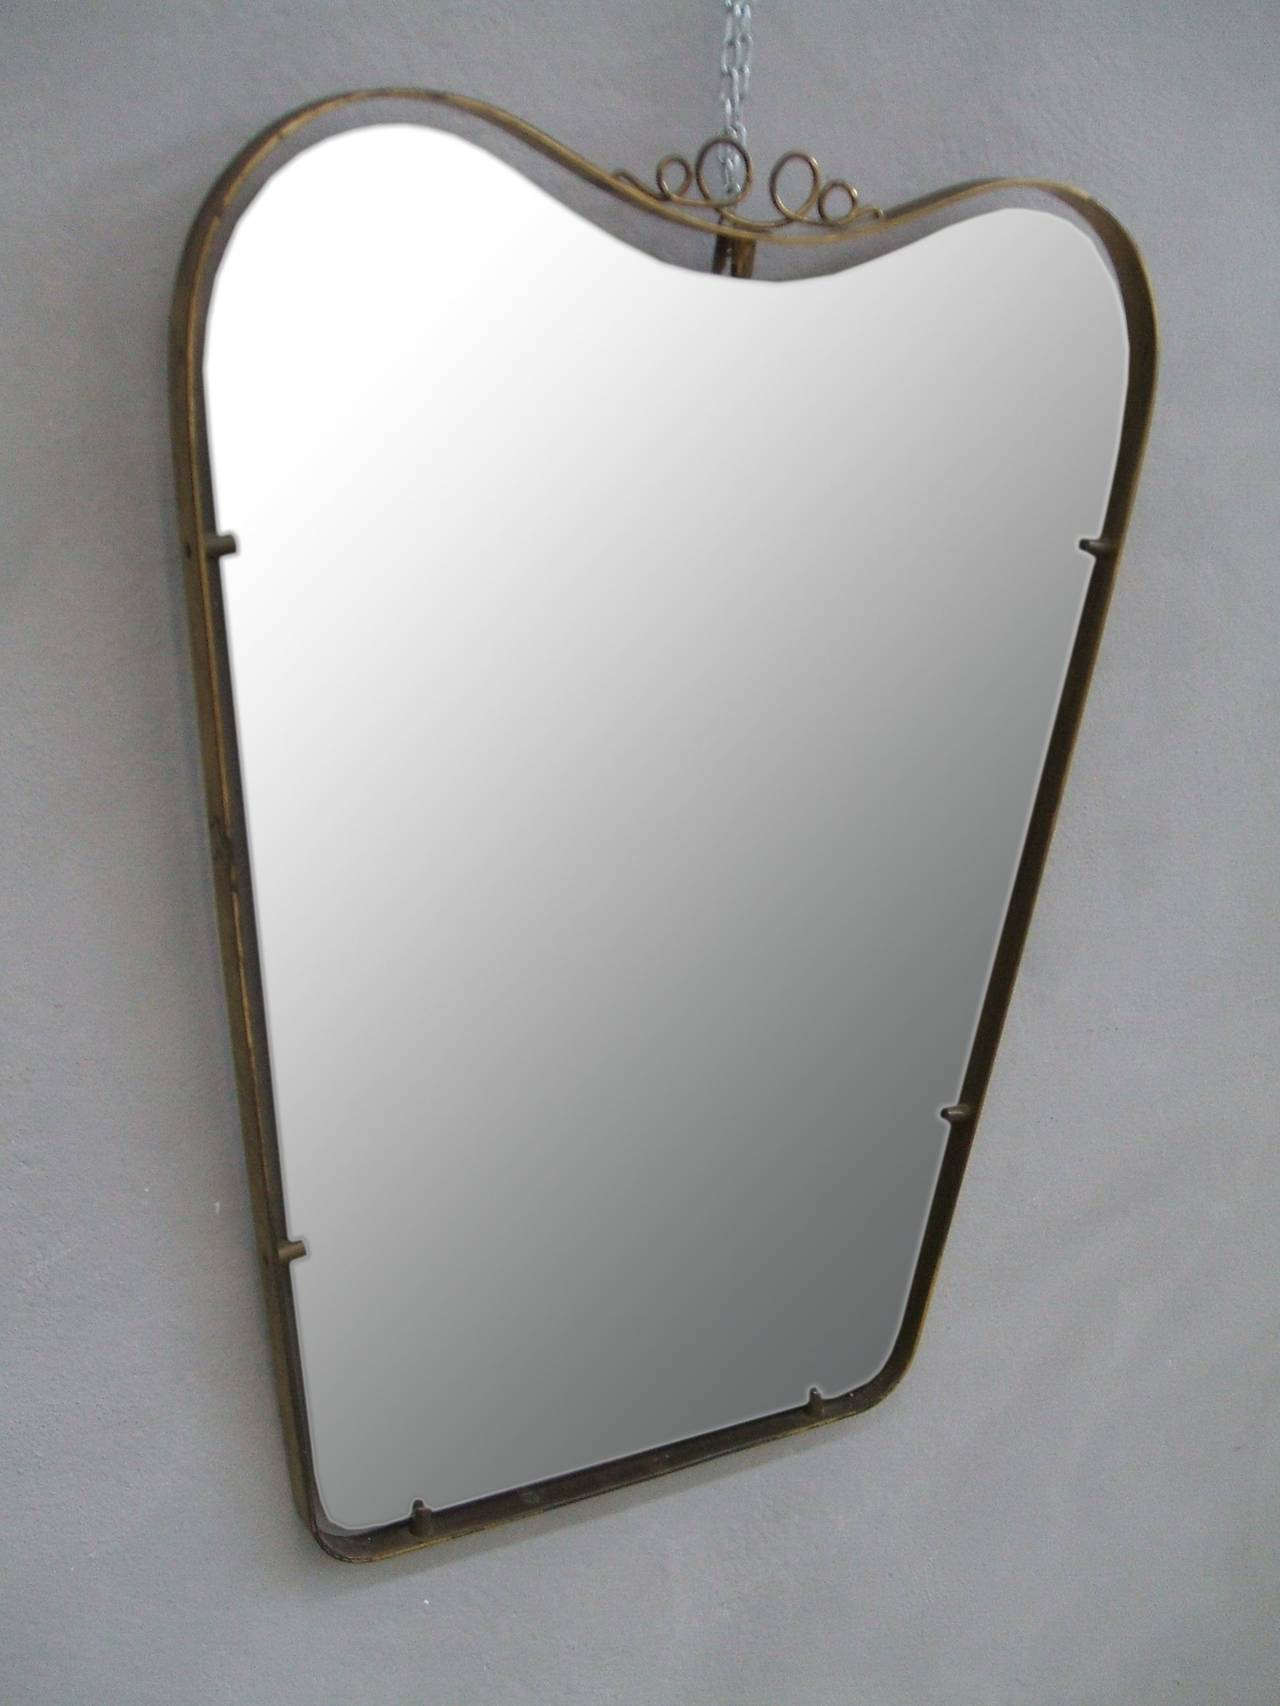 Brass frame mirror in the style of gio ponti for sale at for Mirror frame styles